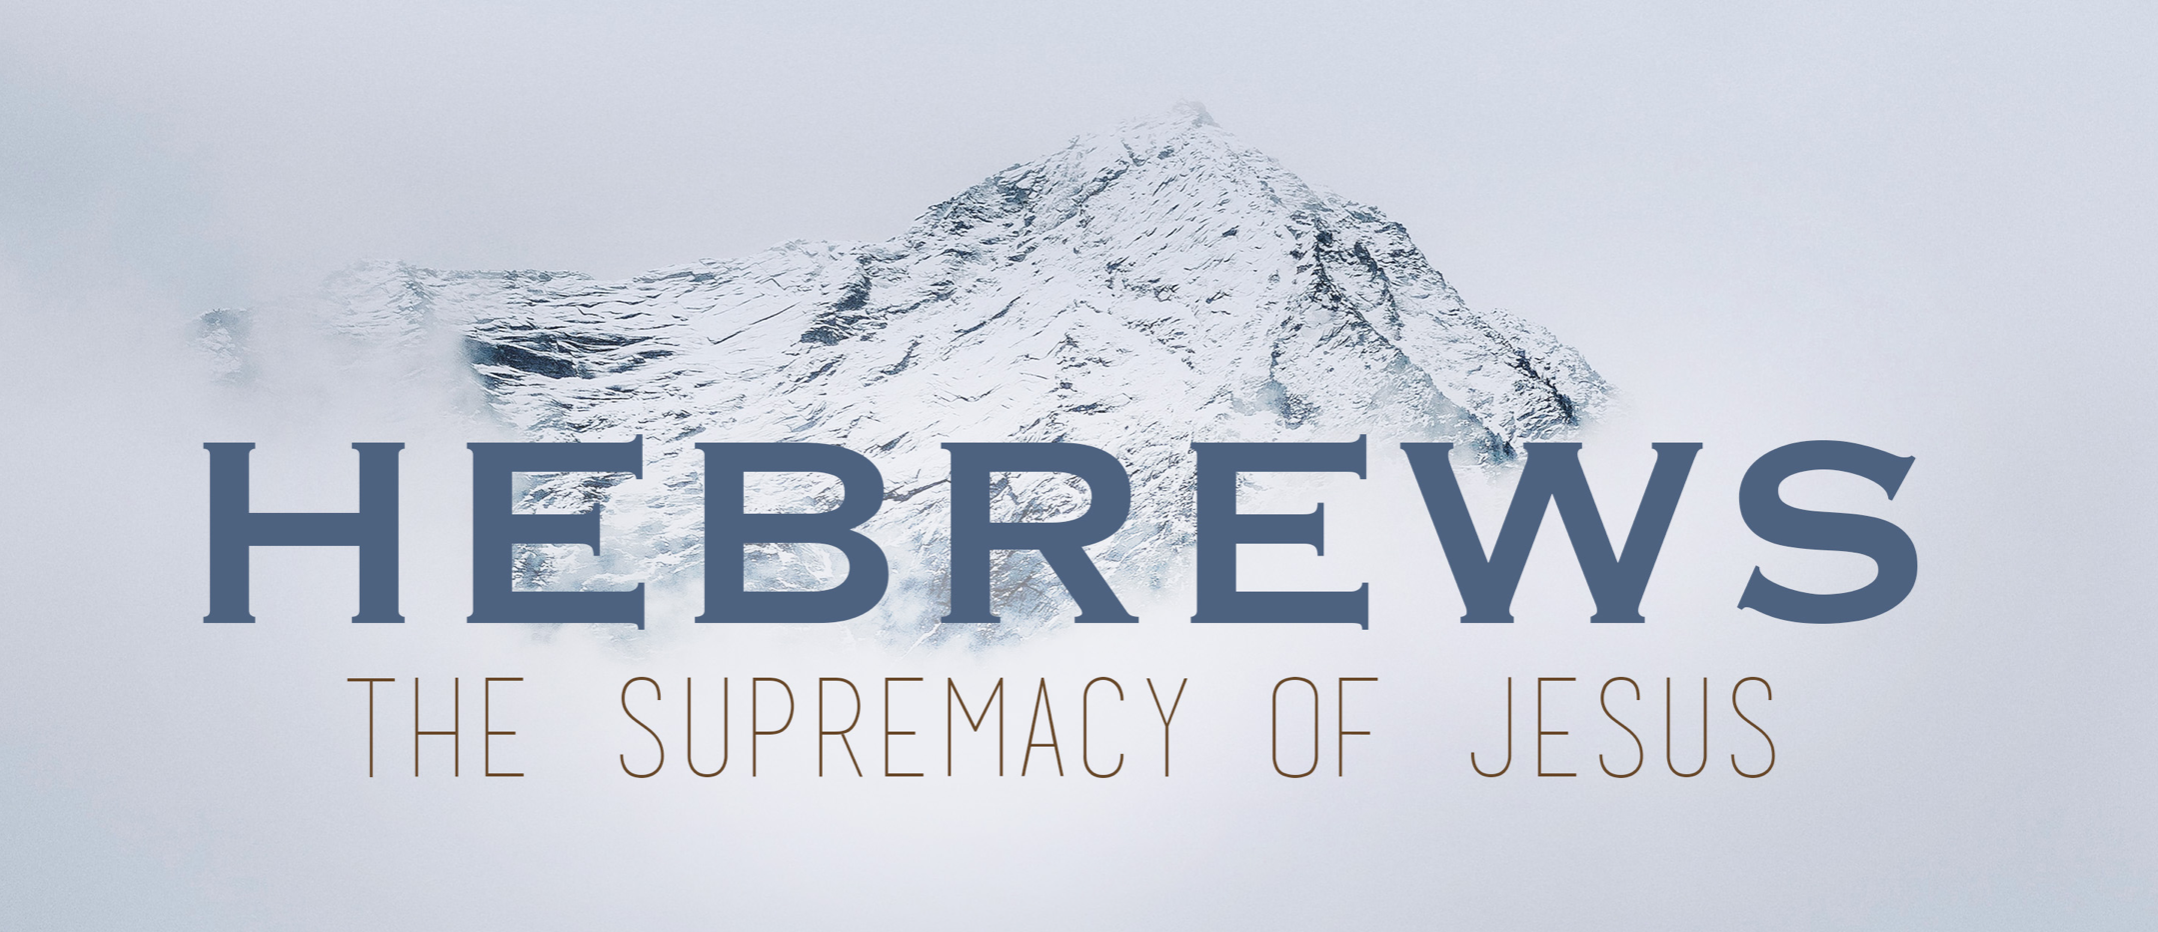 Hebrews: The Supremacy of Jesus